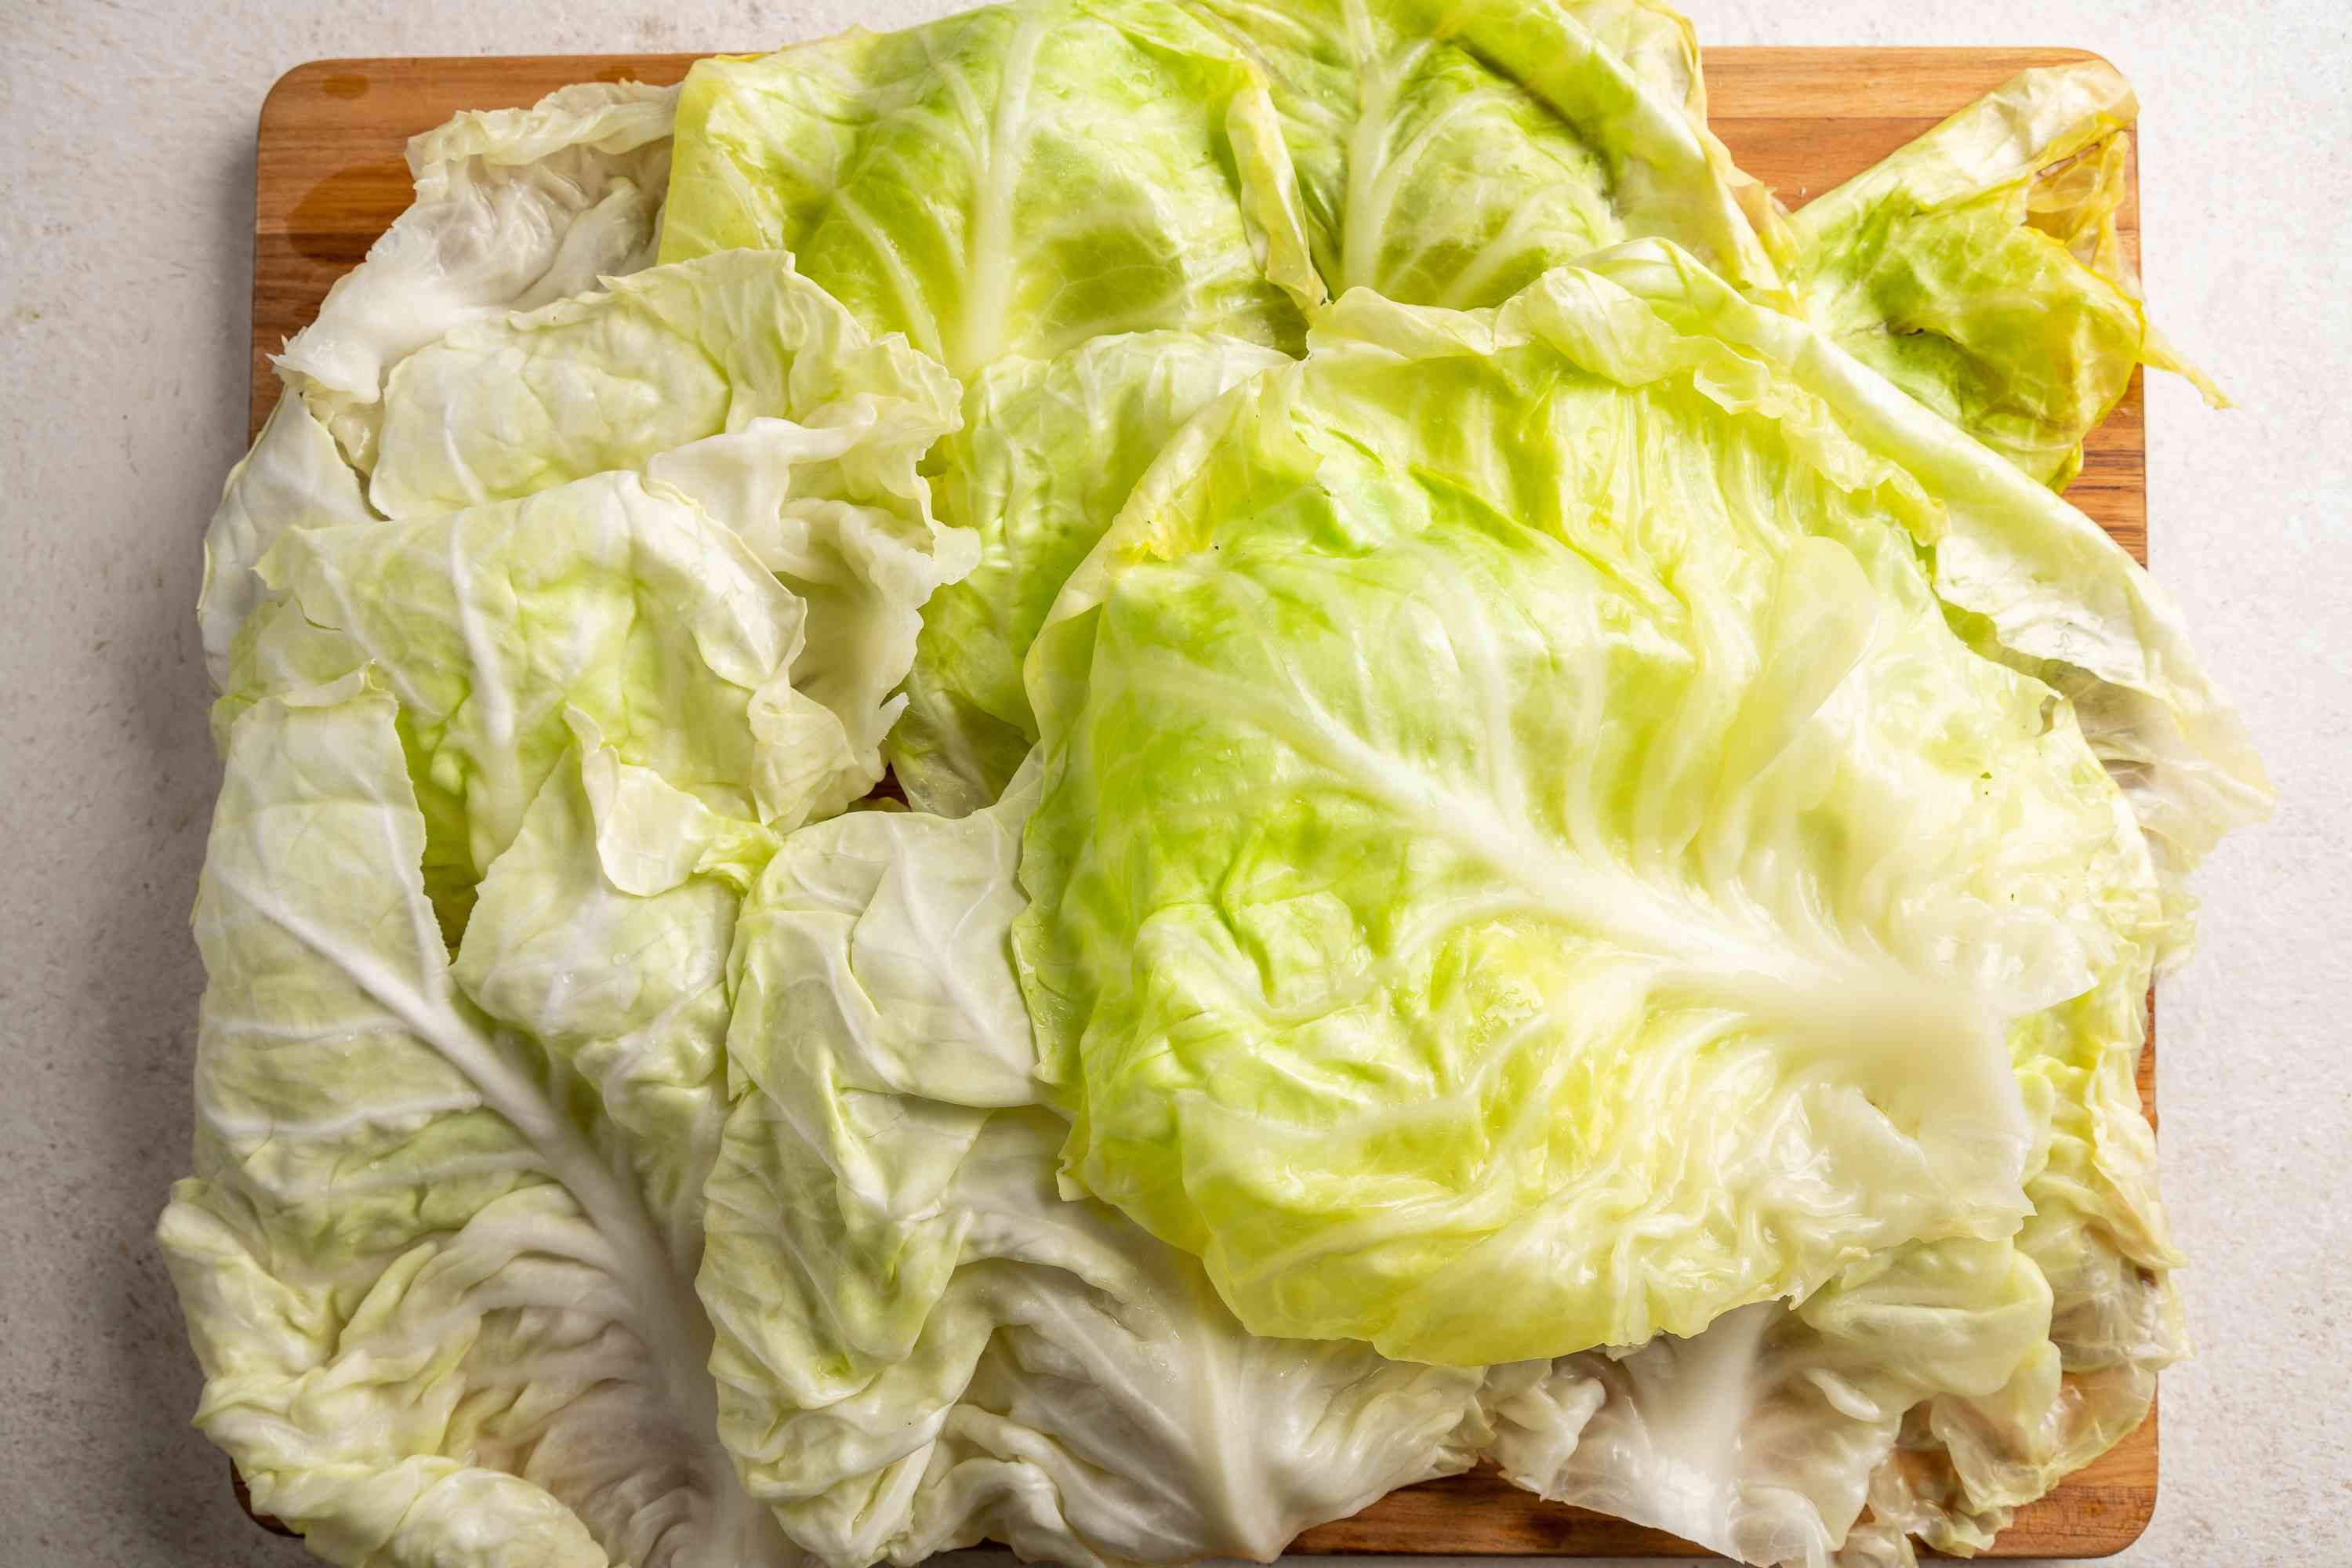 Drain cabbage and separate the cabbage leaves taking care not to tear them